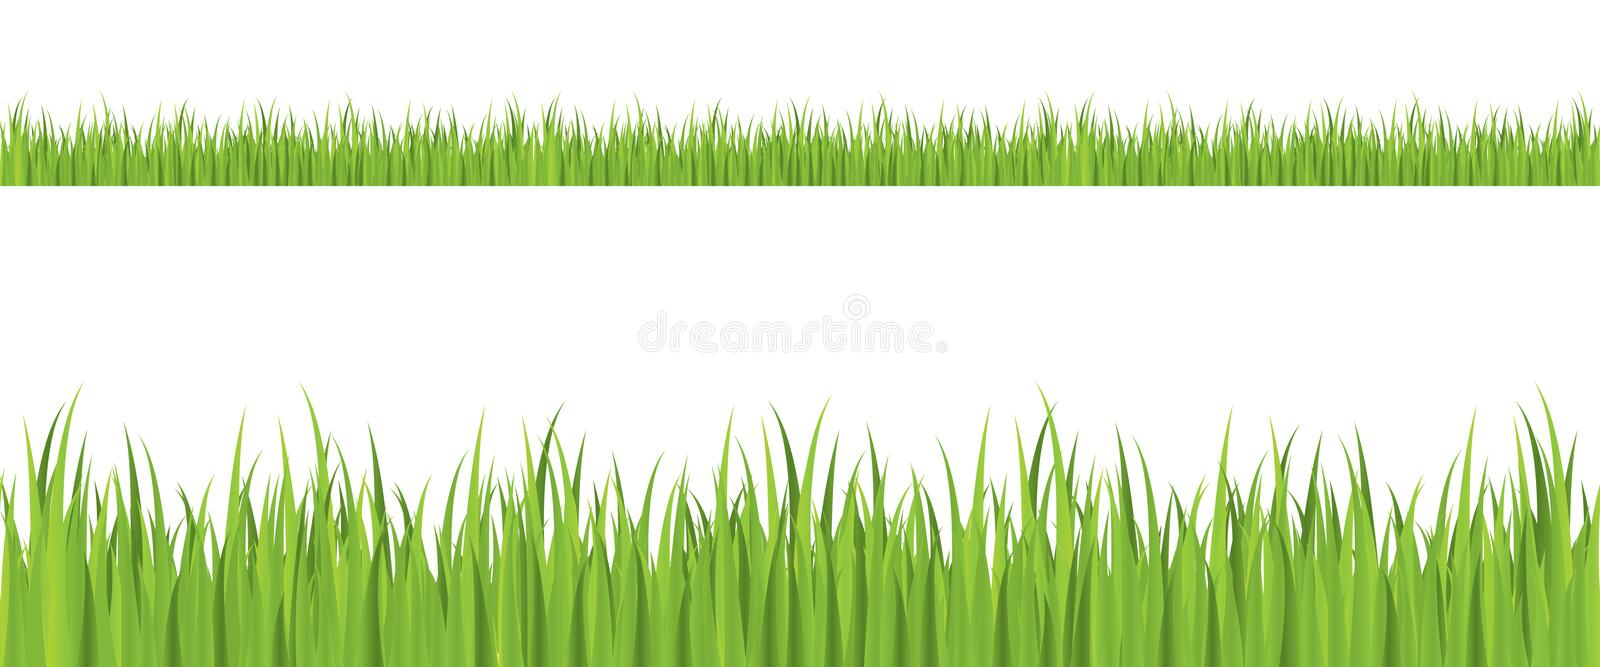 Download Seamless Grass Illustration Royalty Free Stock Images - Image: 8025929